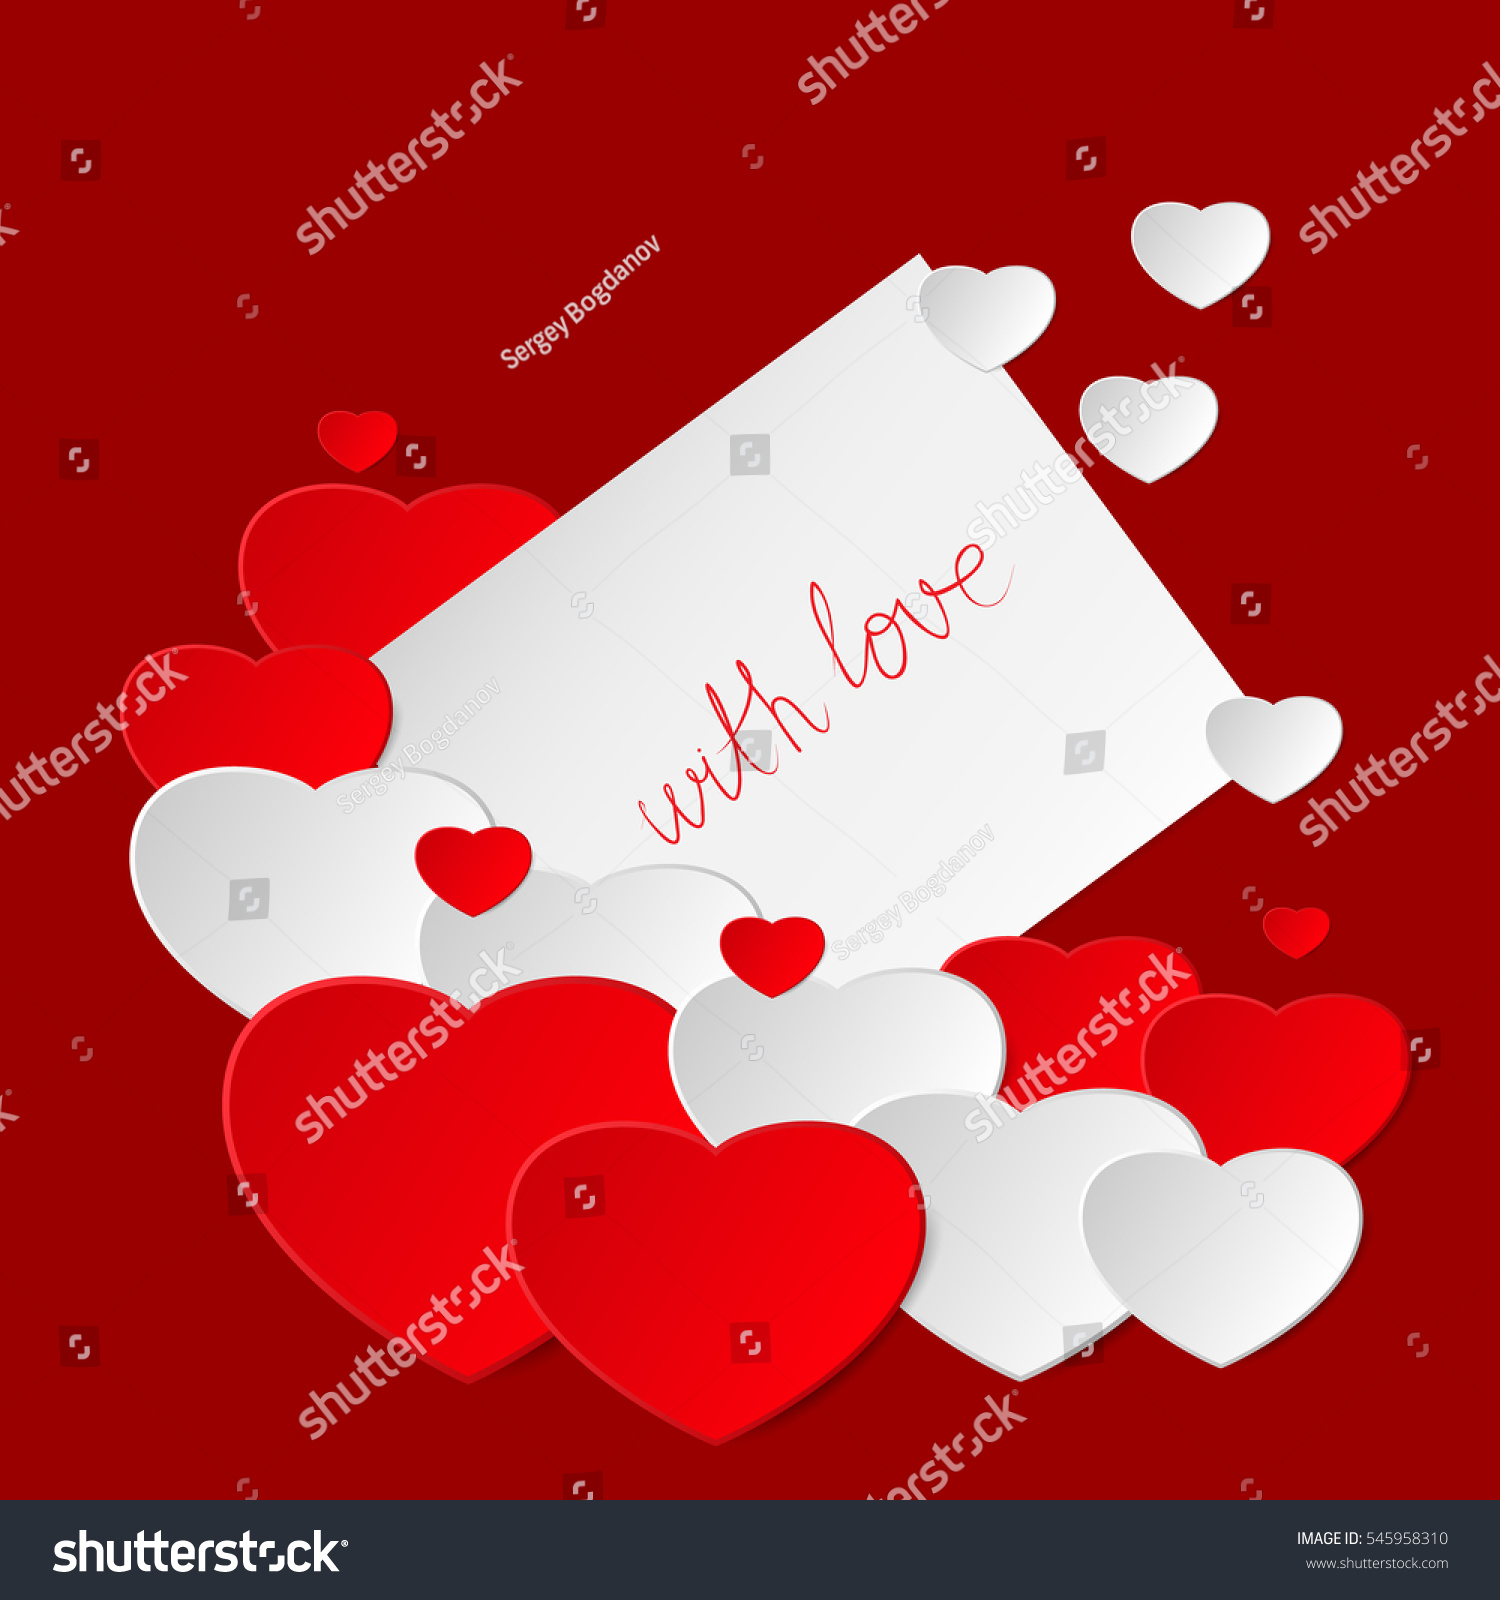 Happy valentines day valentine greeting card stock vector 545958310 happy valentines day valentine greeting card with hearts love romantic messages vector illustration m4hsunfo